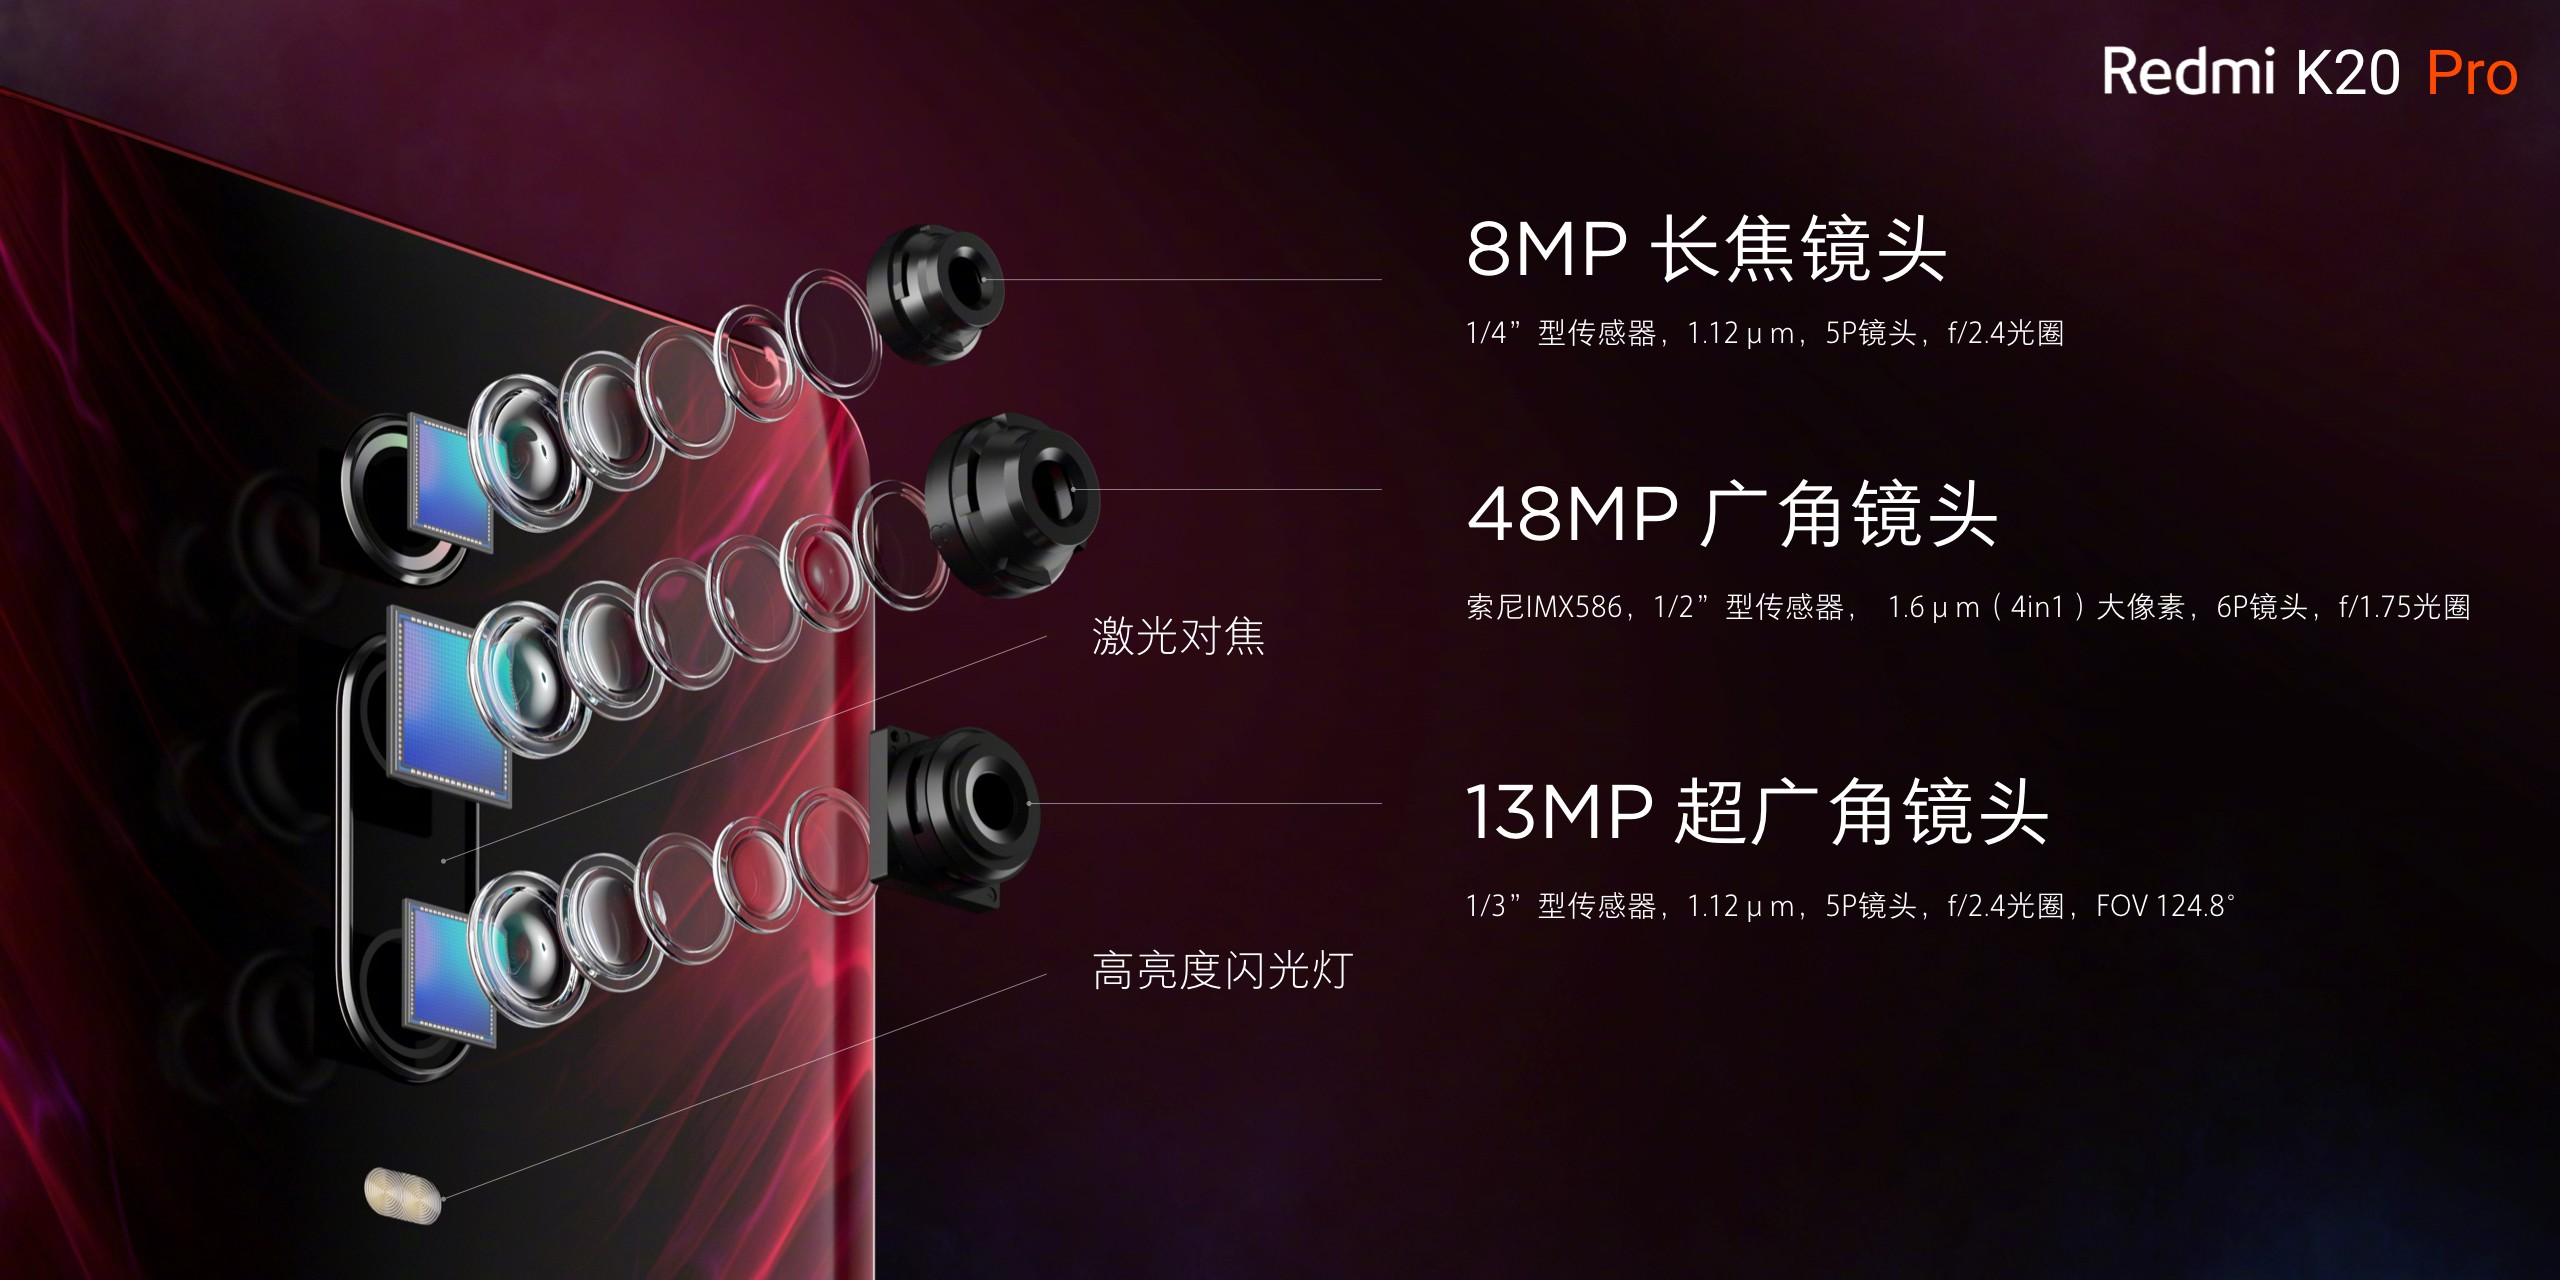 Redmi K20 Pro Camera Set-up